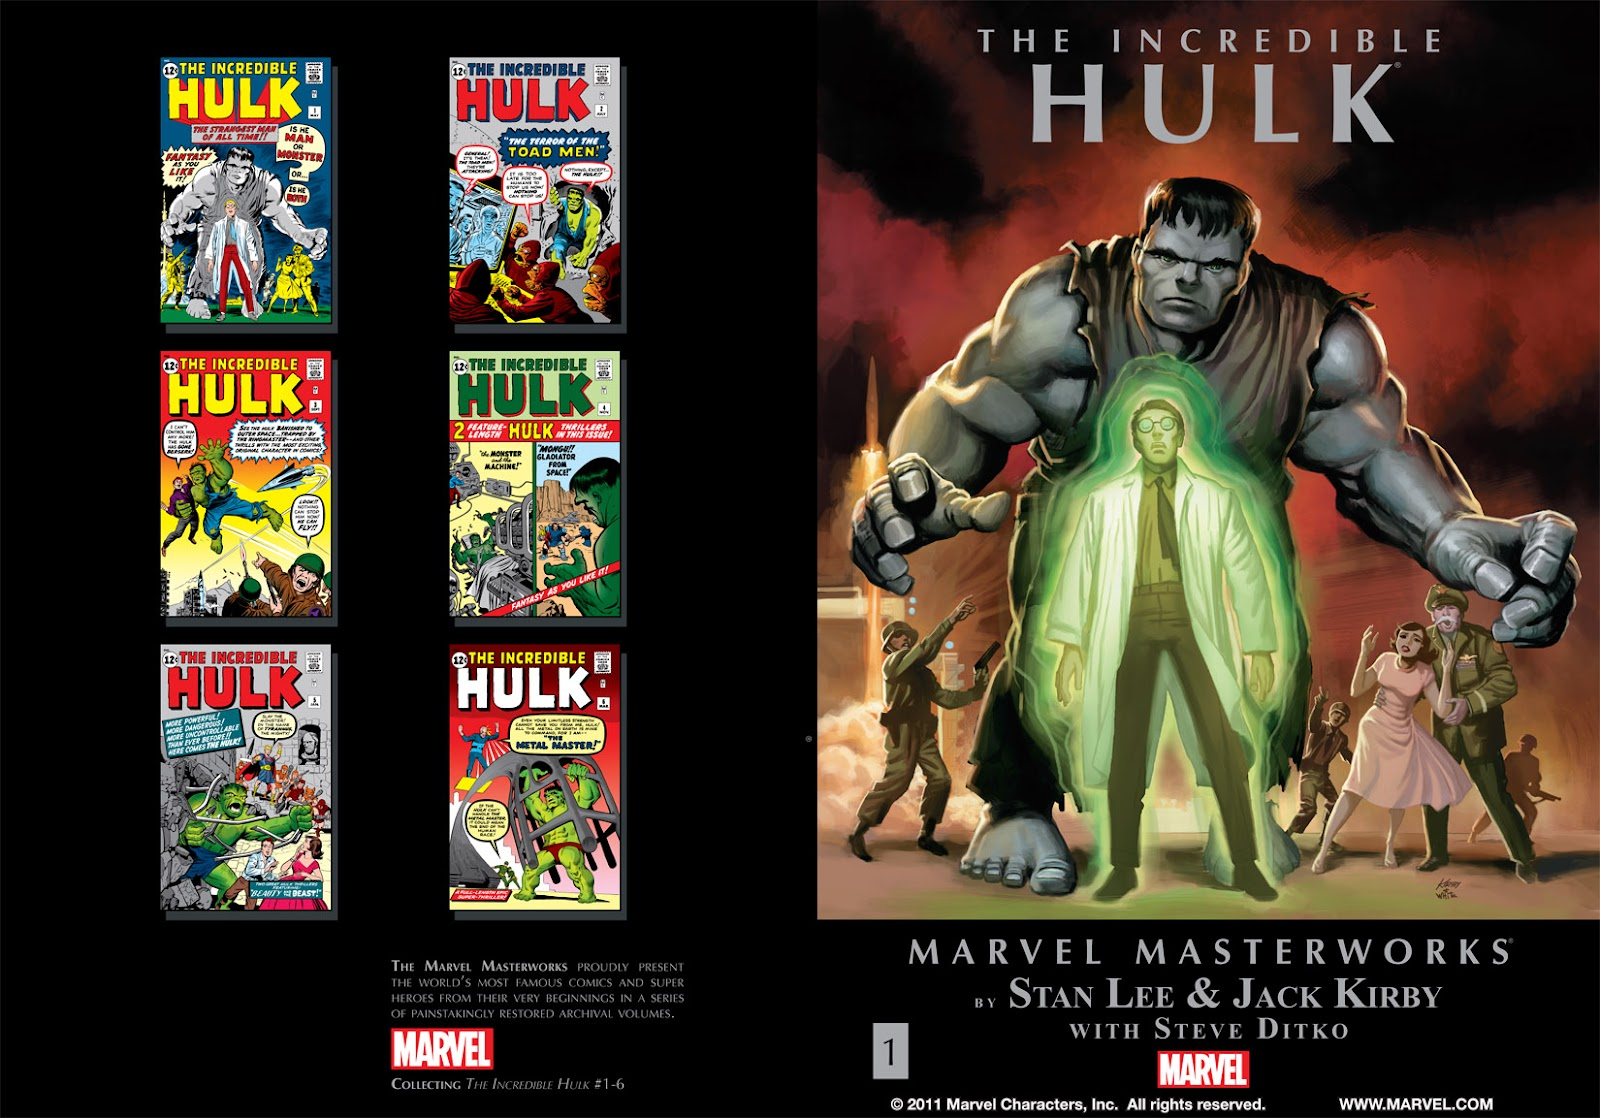 Read online Marvel Masterworks: The Incredible Hulk comic -  Issue # TPB 1 (Part 1) - 2